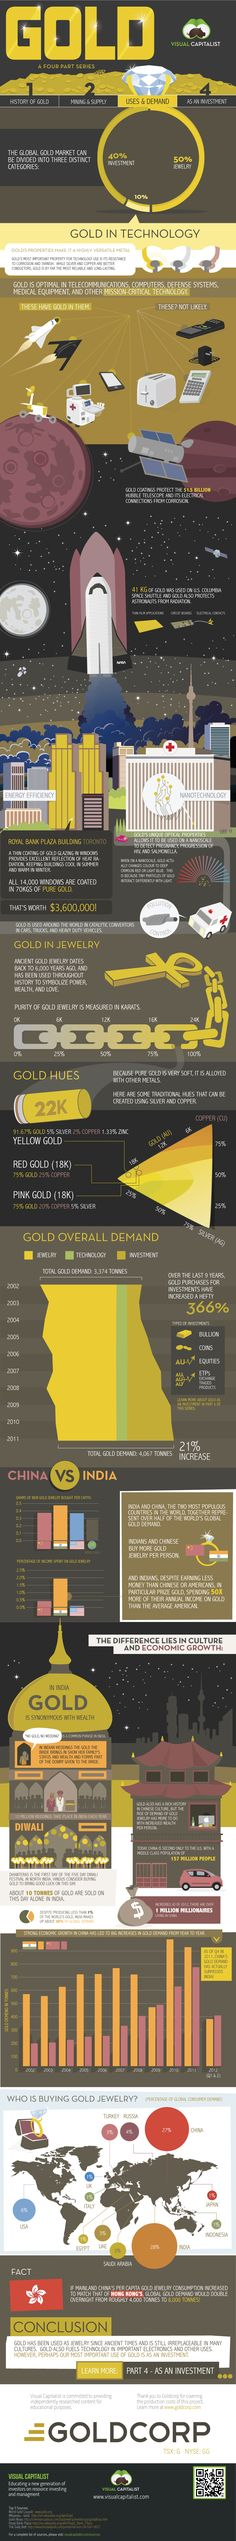 Gold: uses and demand